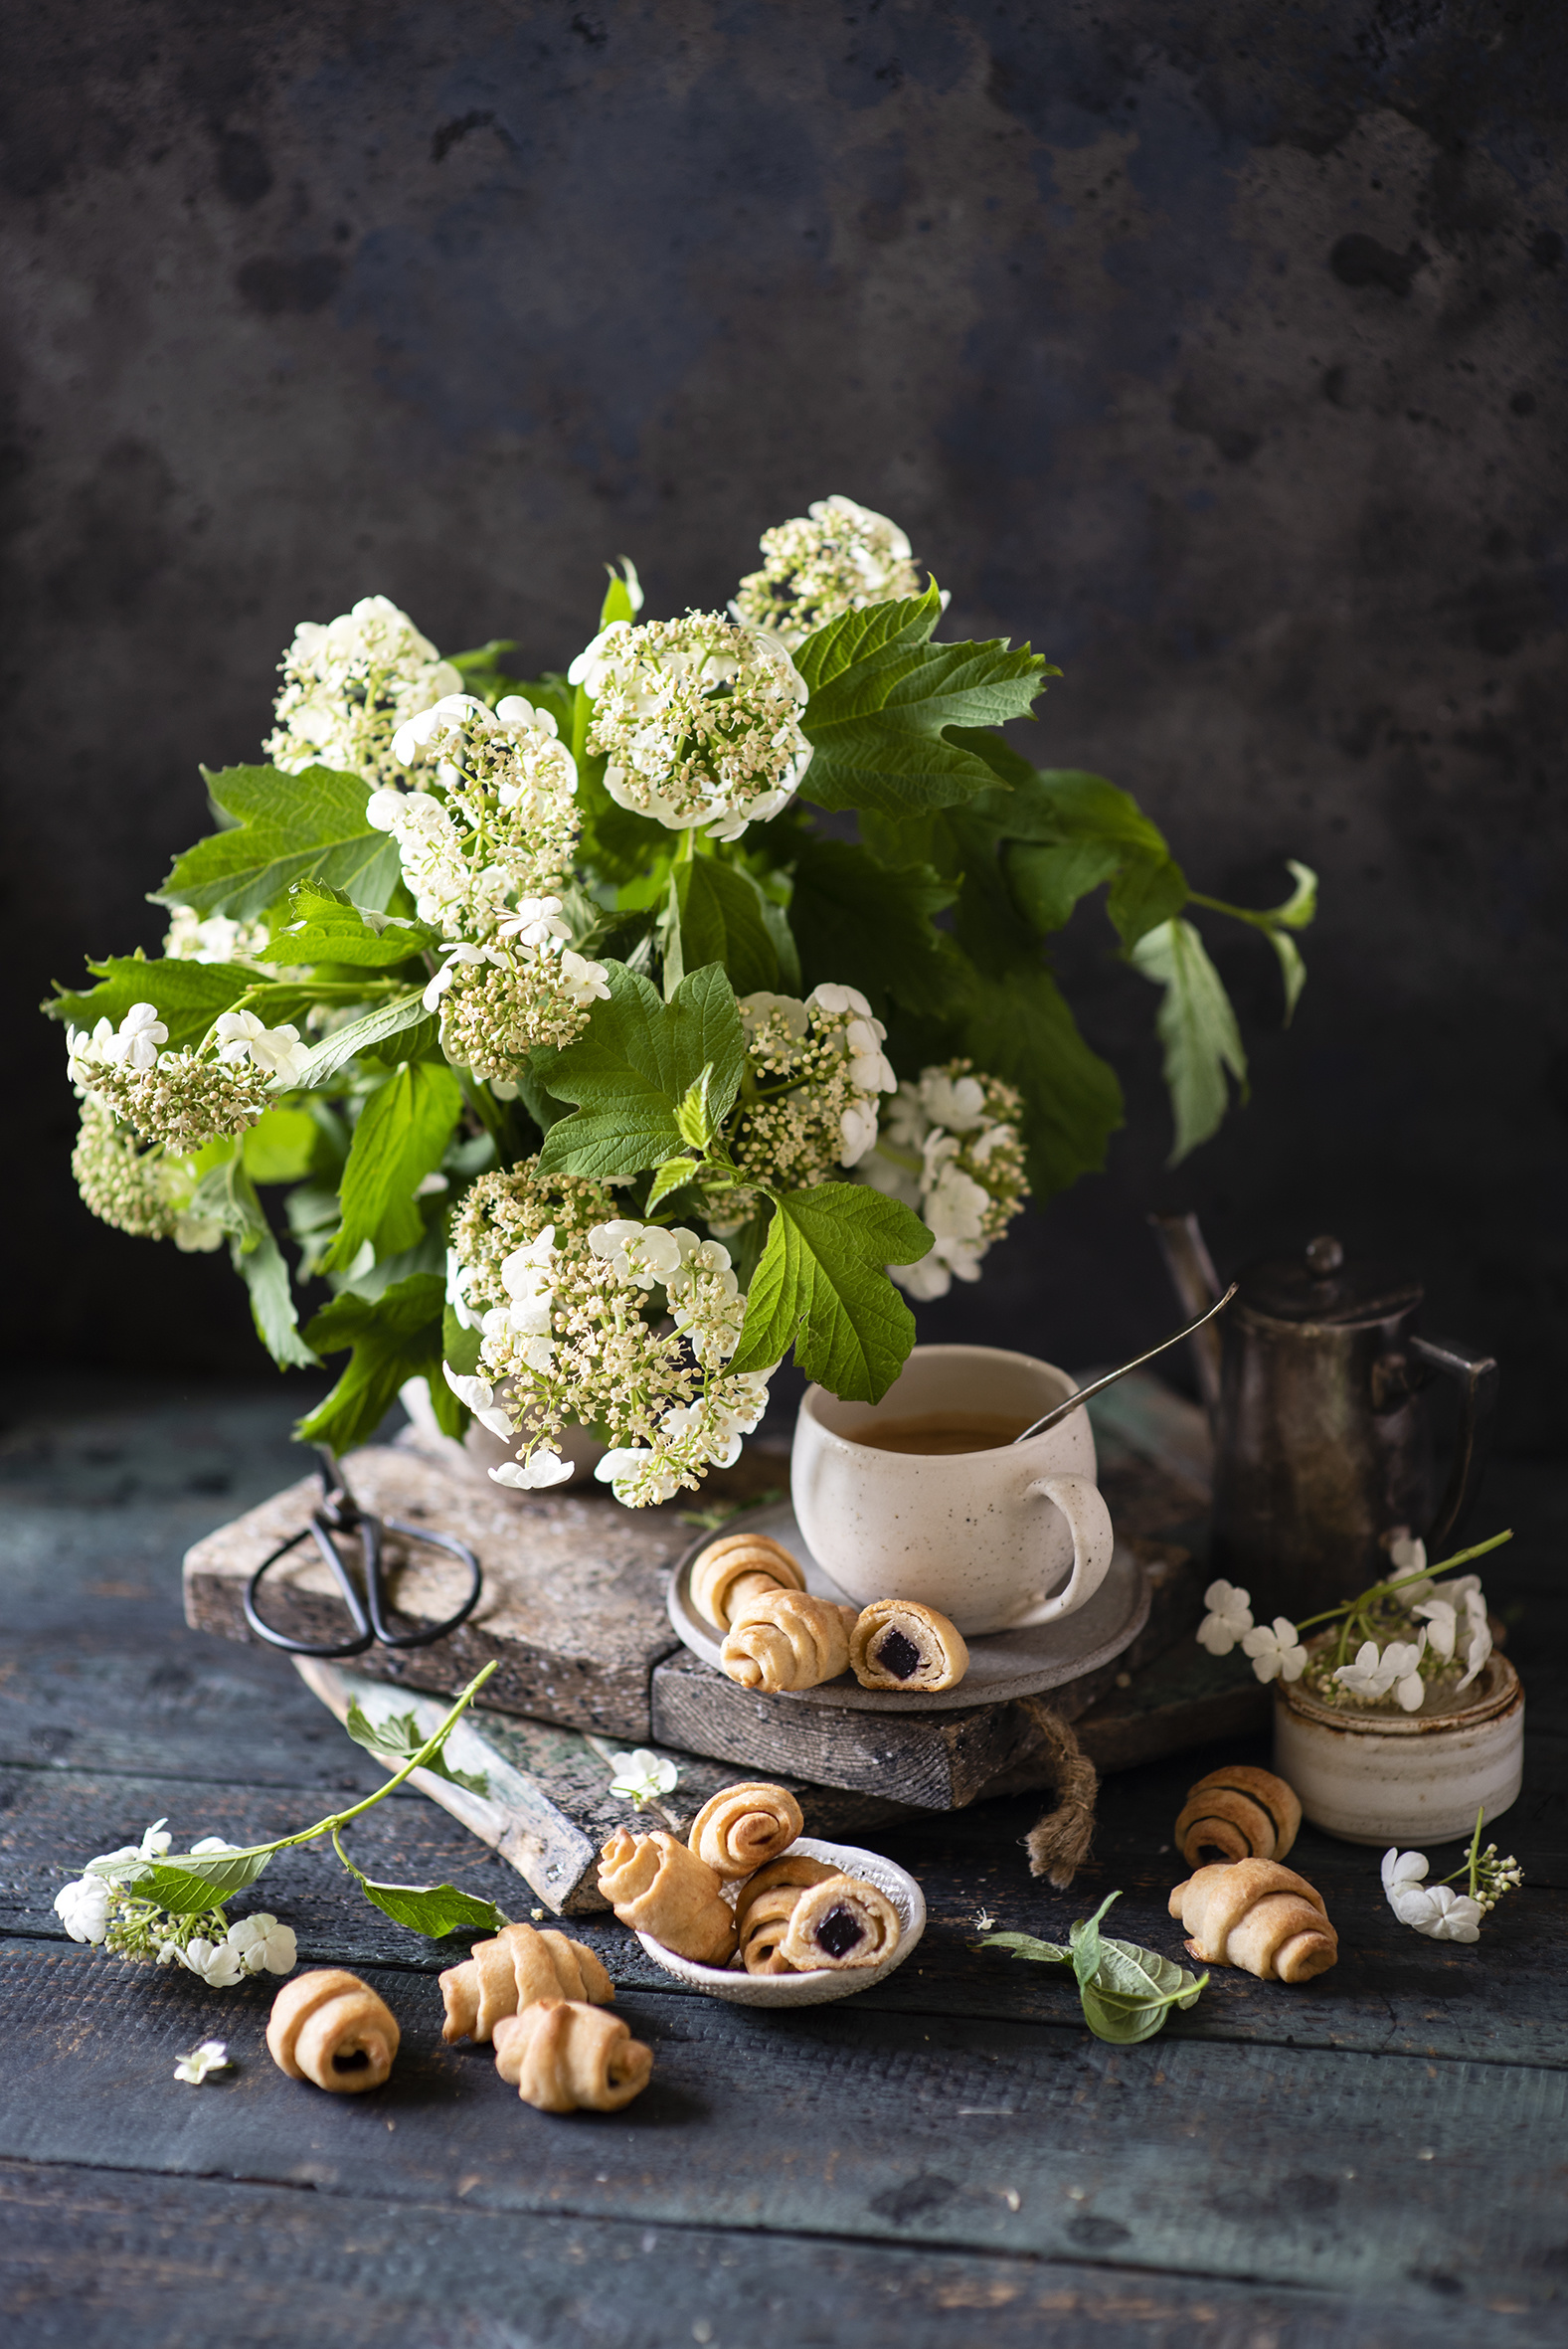 Desktop Wallpapers bouquet Croissant Cup Food Branches Wood planks  for Mobile phone Bouquets boards